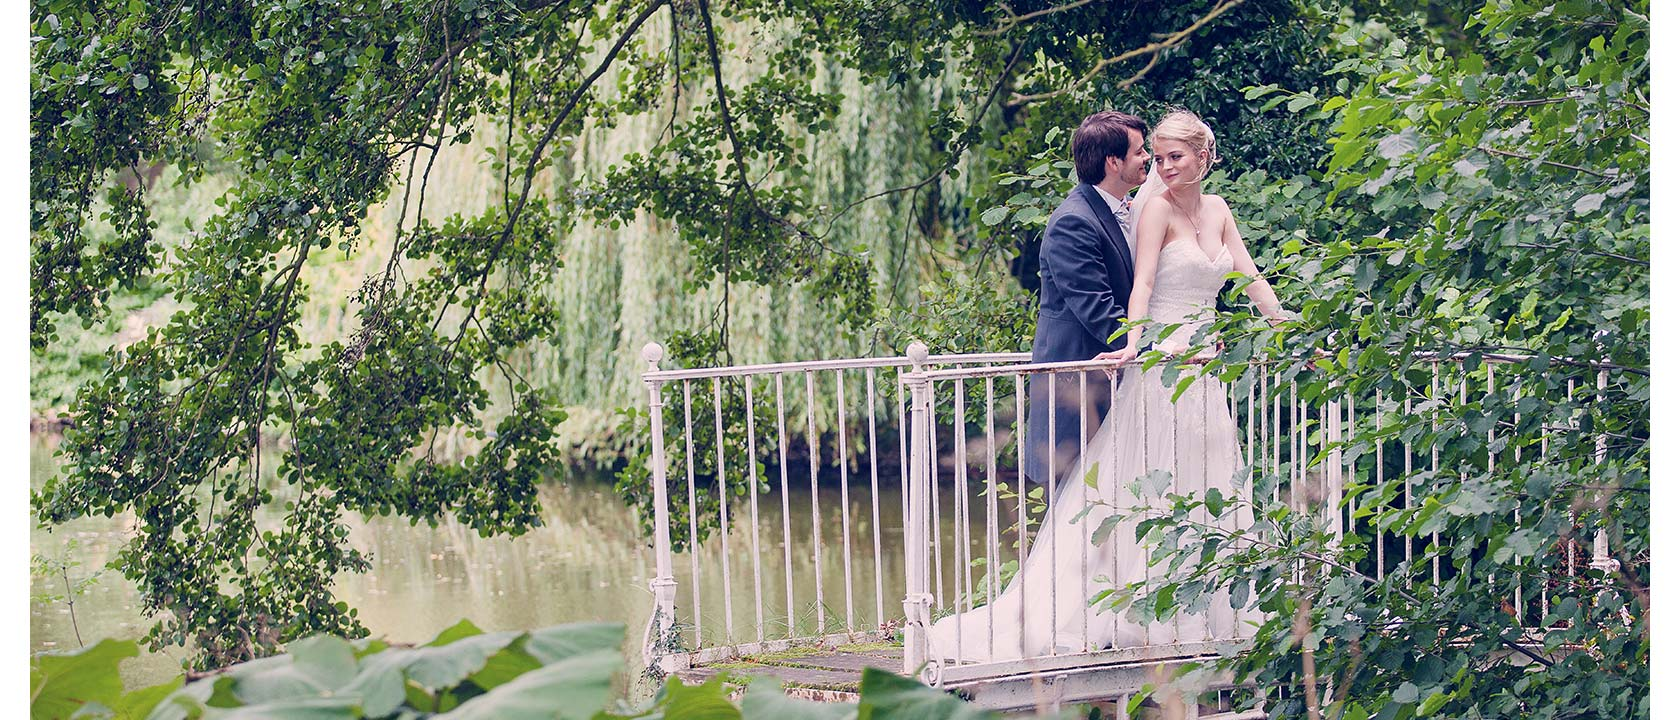 A bride and her handsome groom standing on an ornate garden bridge.